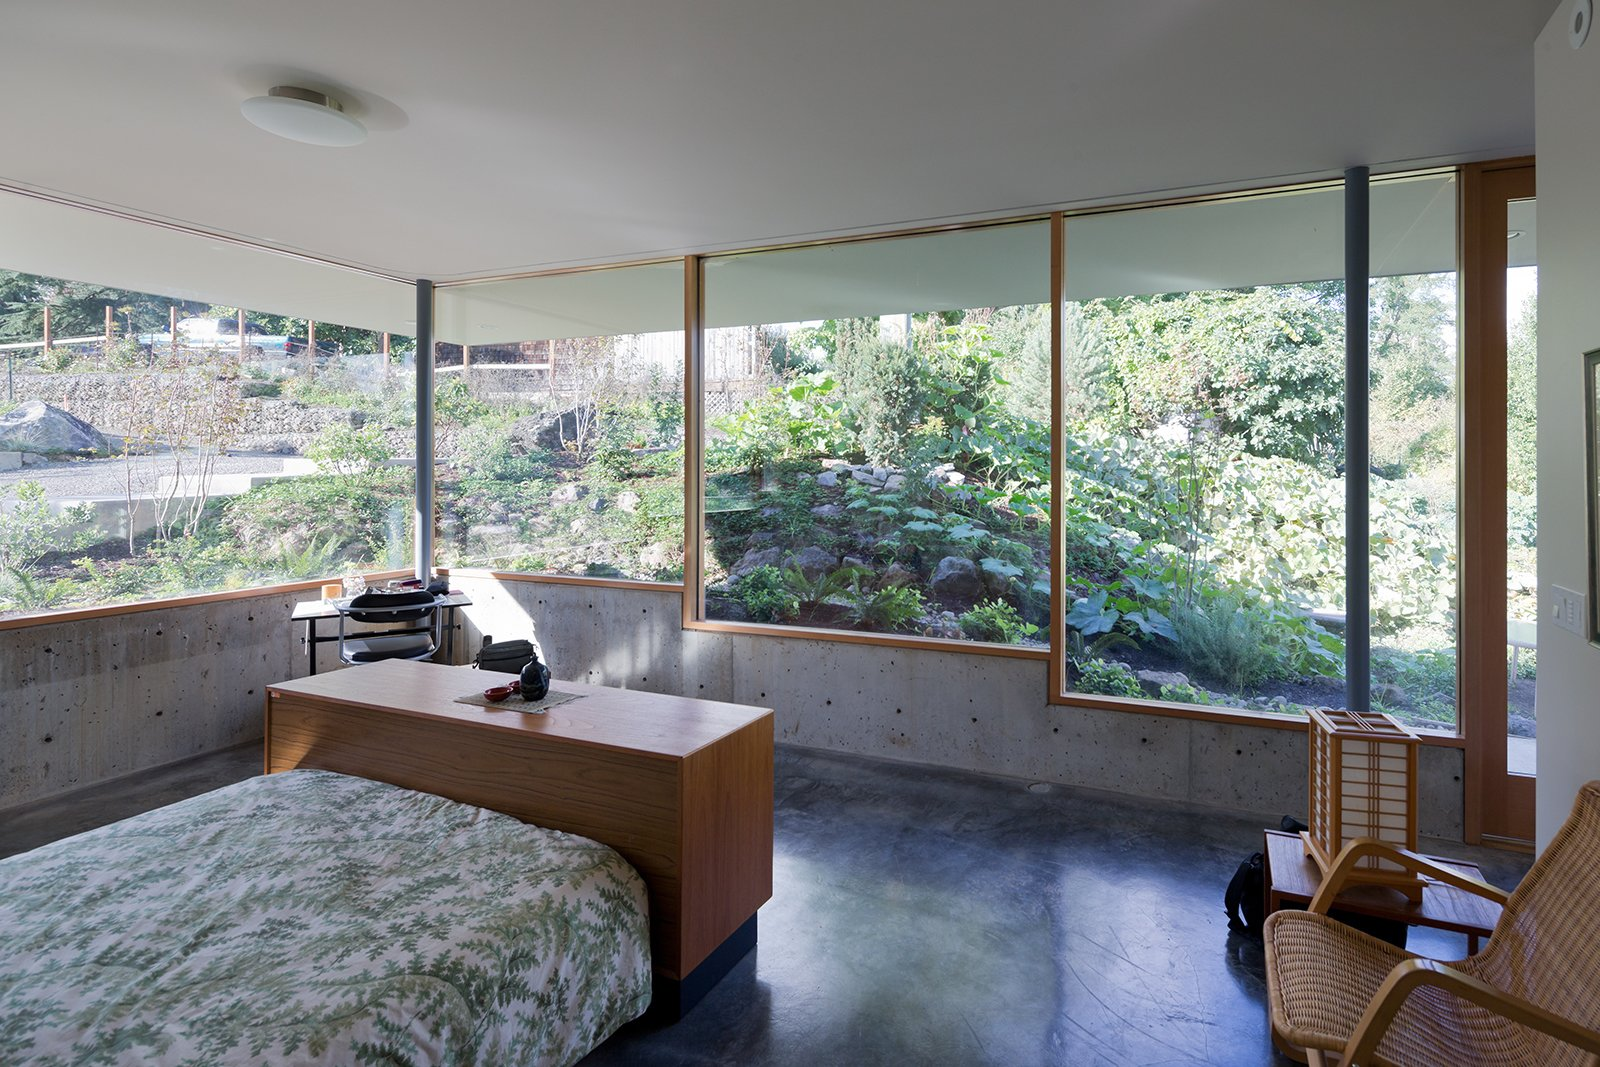 In the master bedroom, stepped windows framed by Douglas fir mullions rest on low concrete walls that are flush with the easy-to-maintain, hand-troweled concrete floor. The platform bed is from Scan Design and the rattan chair is from Ikea. This House Gets Better with Age - Photo 4 of 9